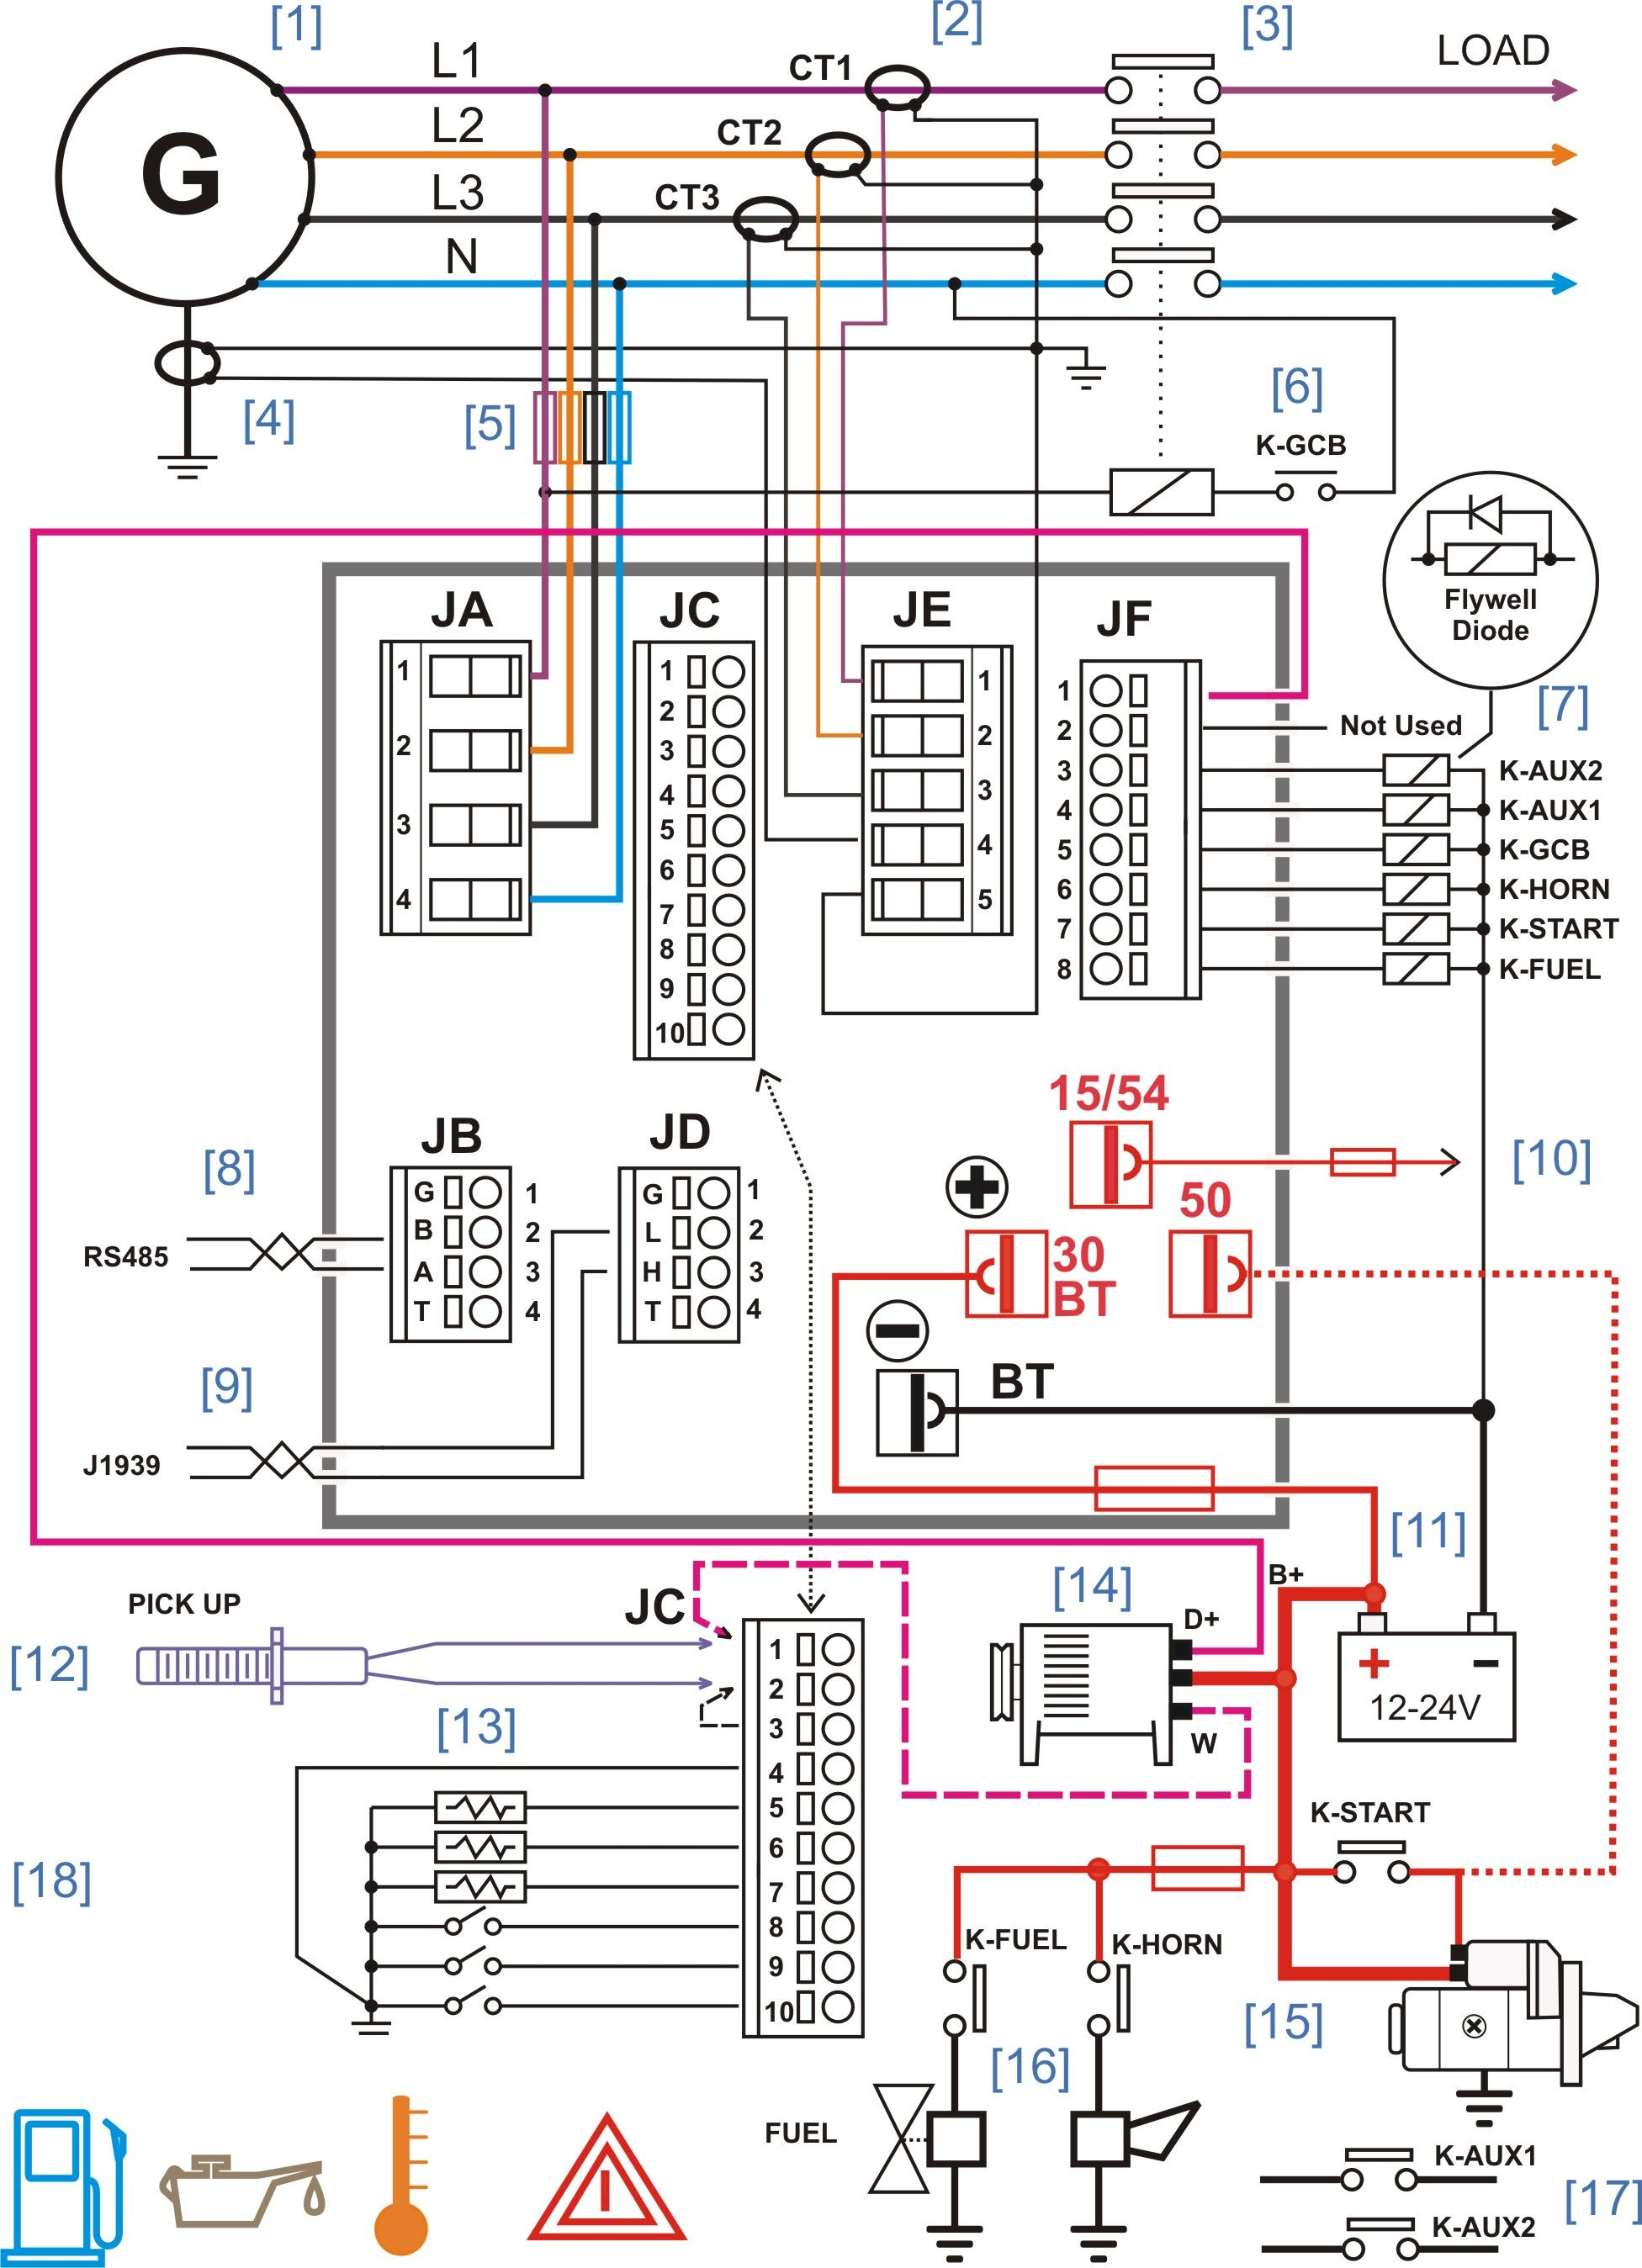 e32695bfa9986573569381a039ba42a6 diesel generator control panel wiring diagram gr pinterest wire diagram motor guide 784 at alyssarenee.co